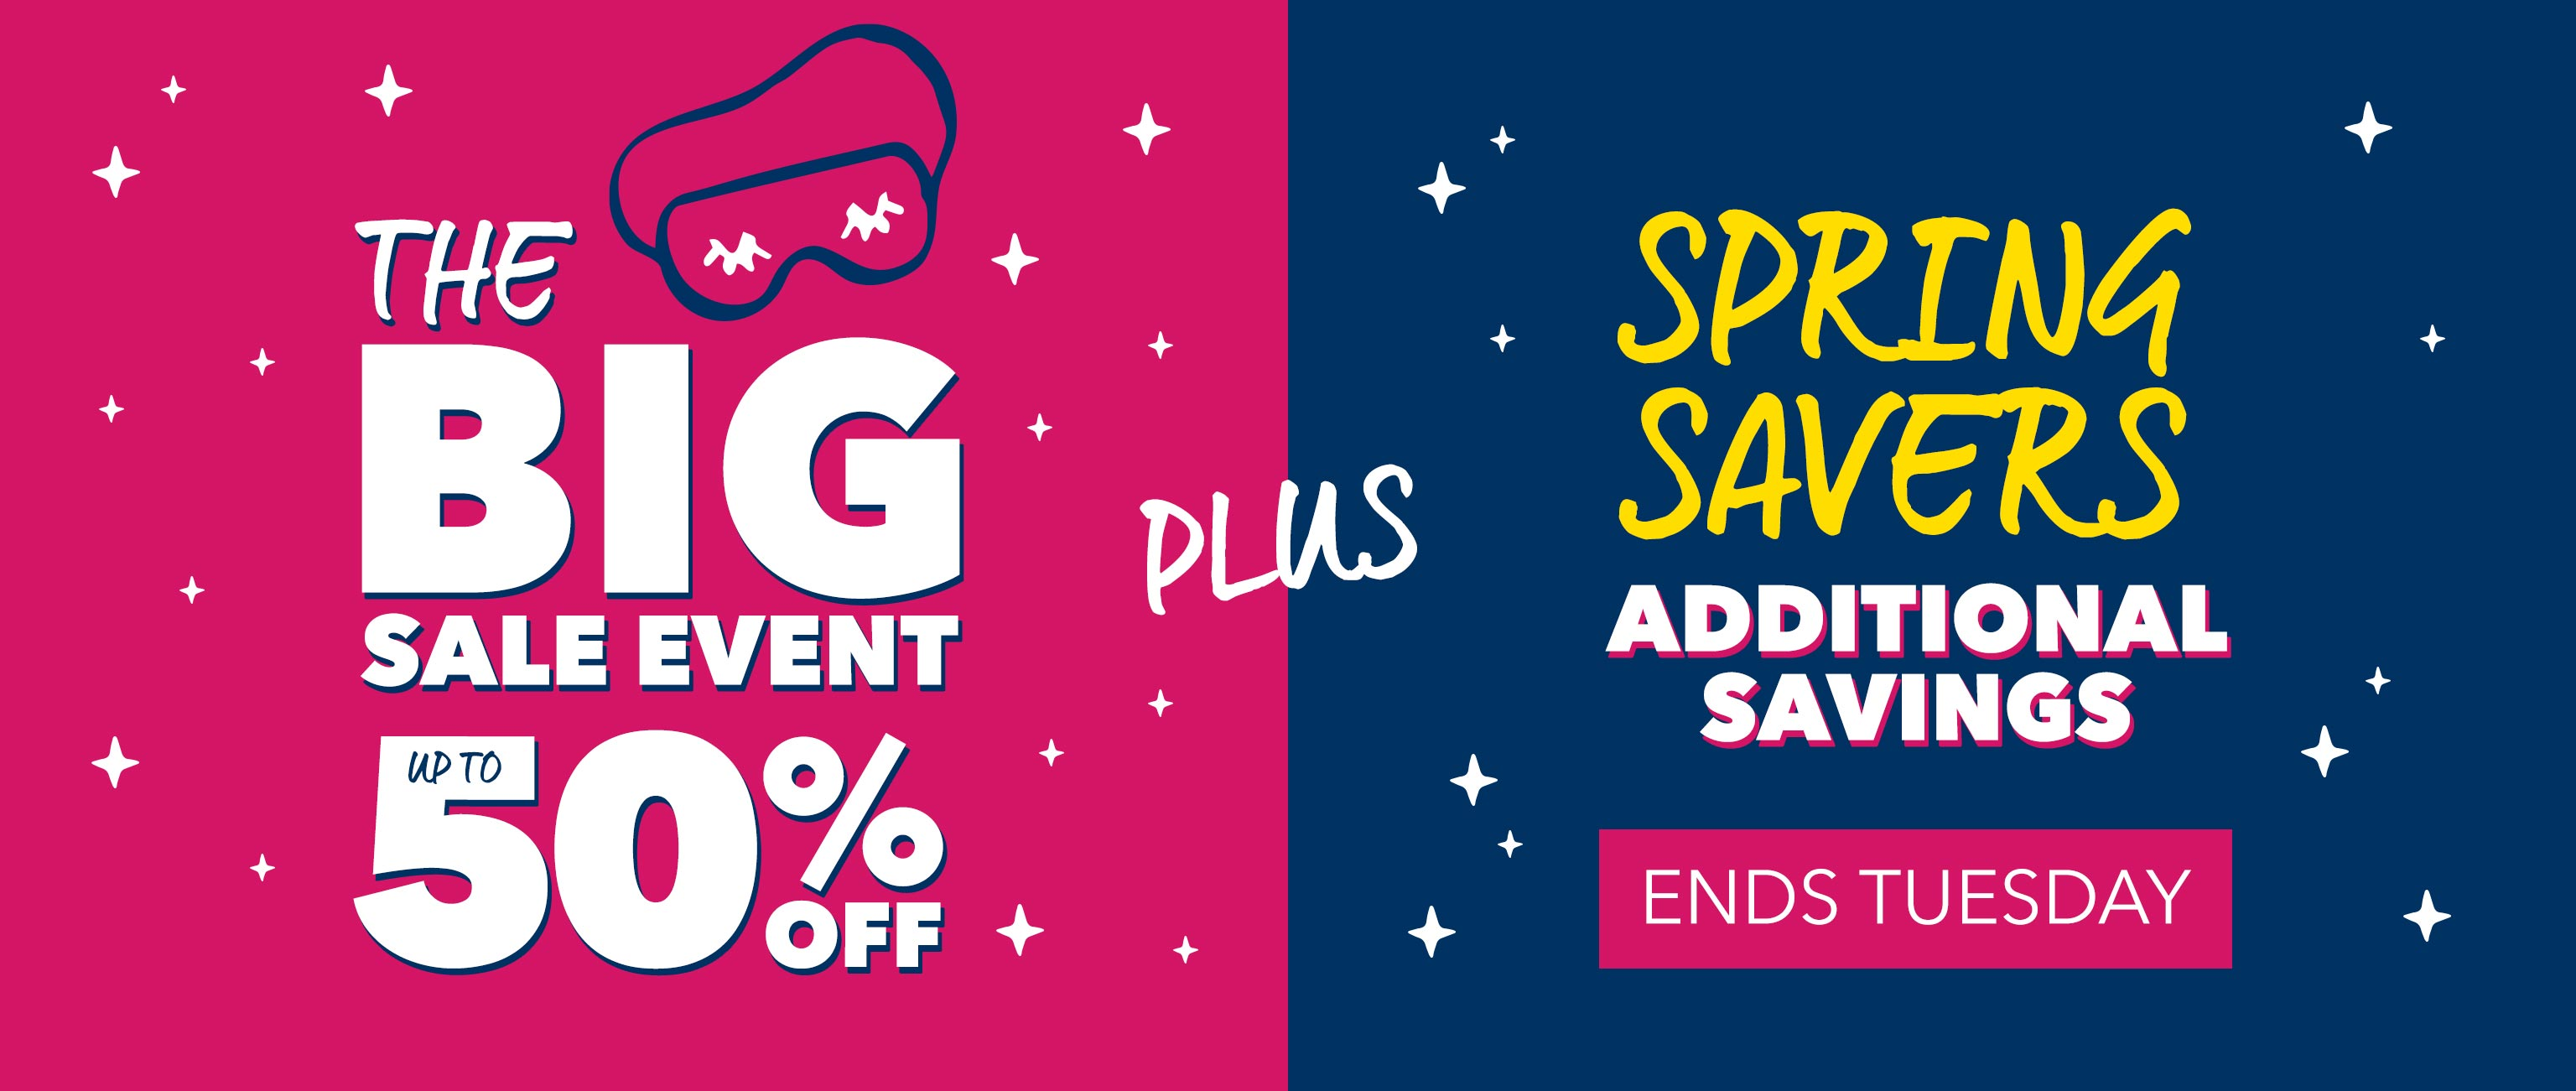 homepage - the big event spring savers - ends tuesday